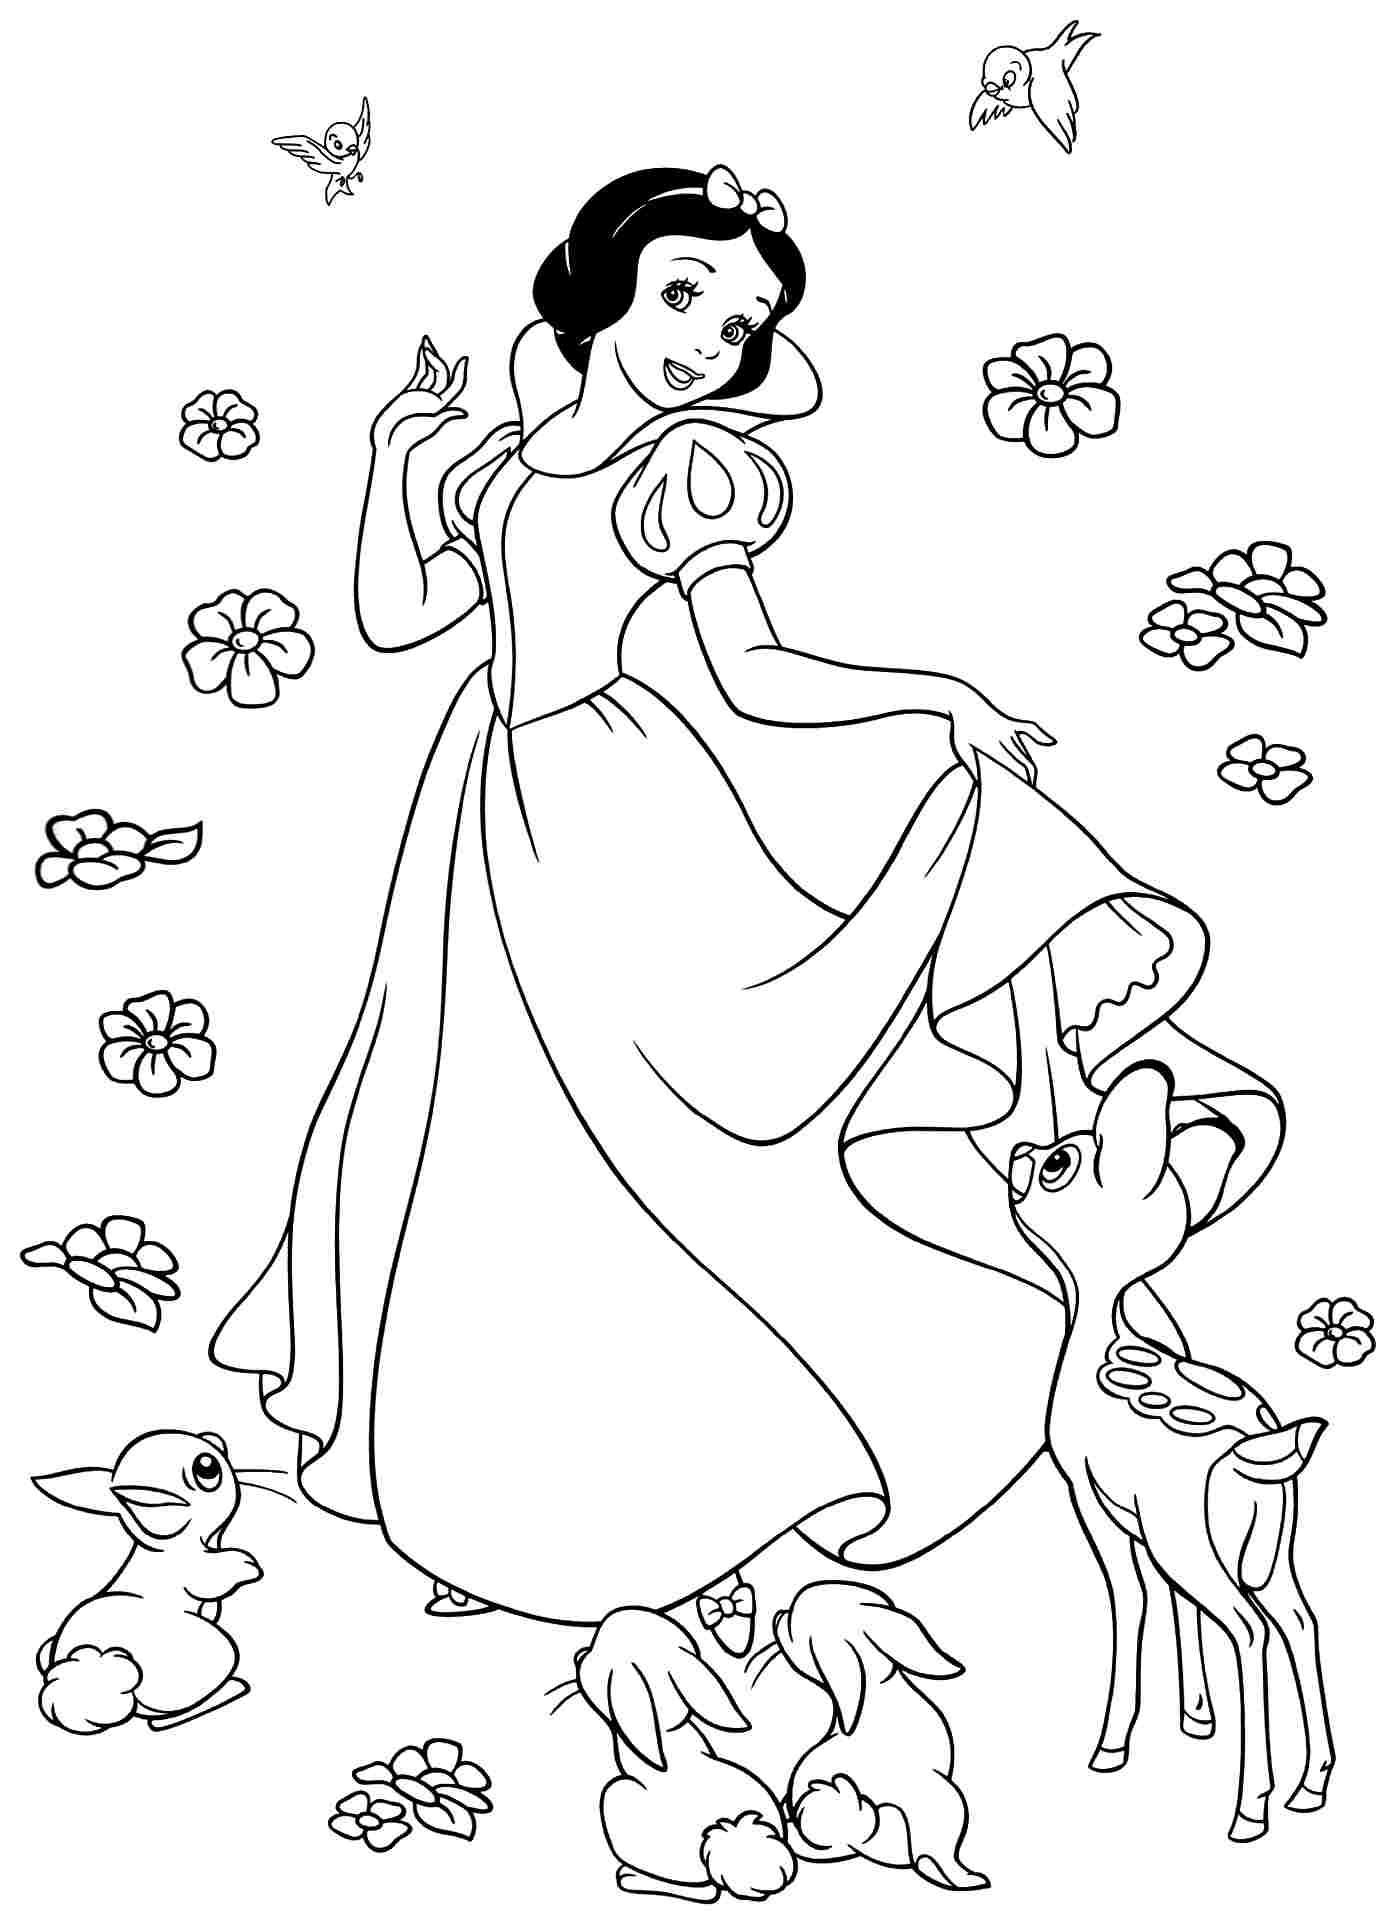 Disney Princess Coloring Pages Snow White - Coloring Home